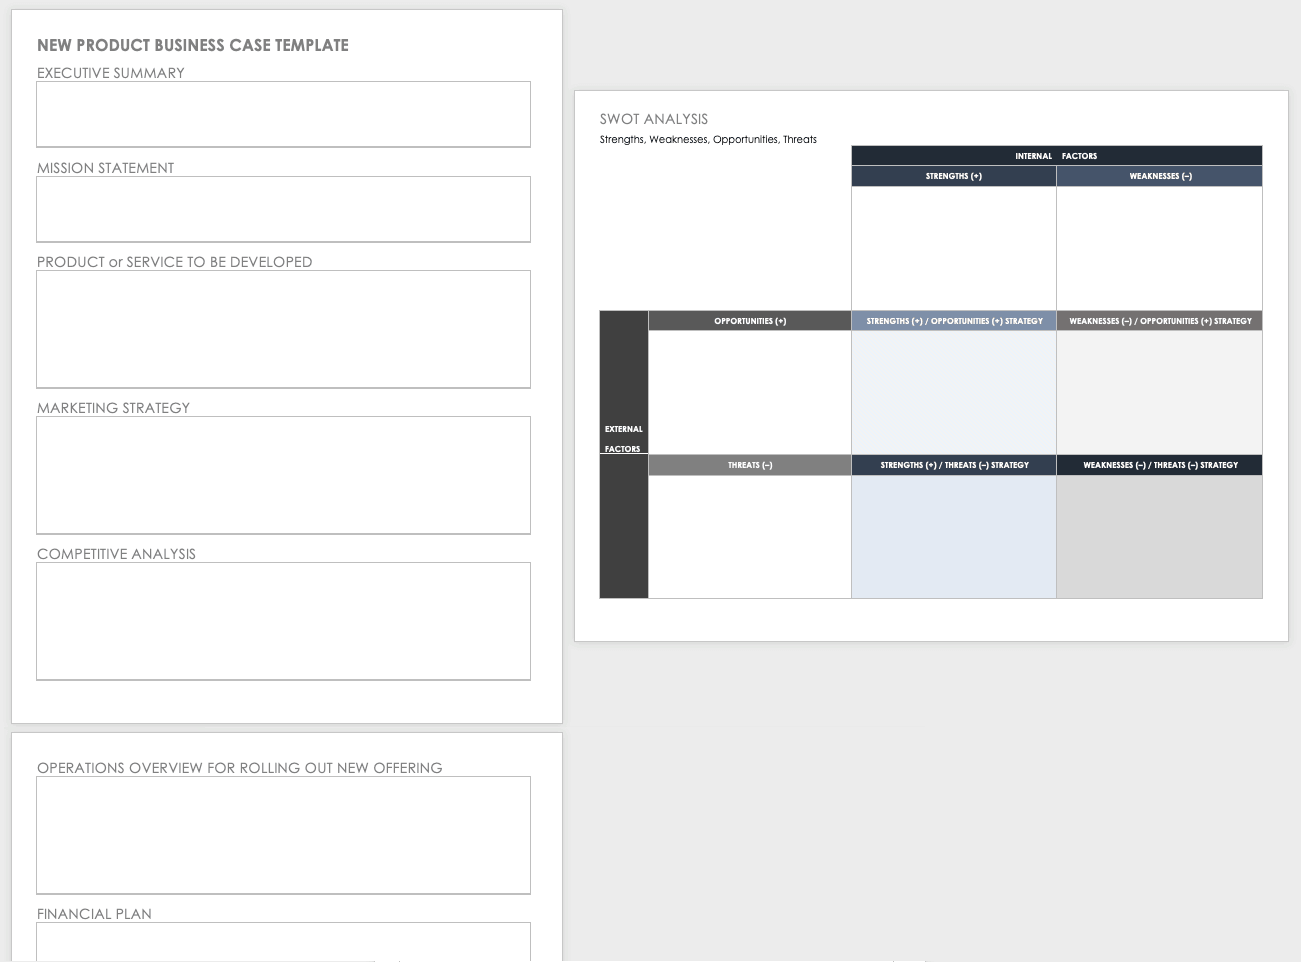 New Product Business Case Template